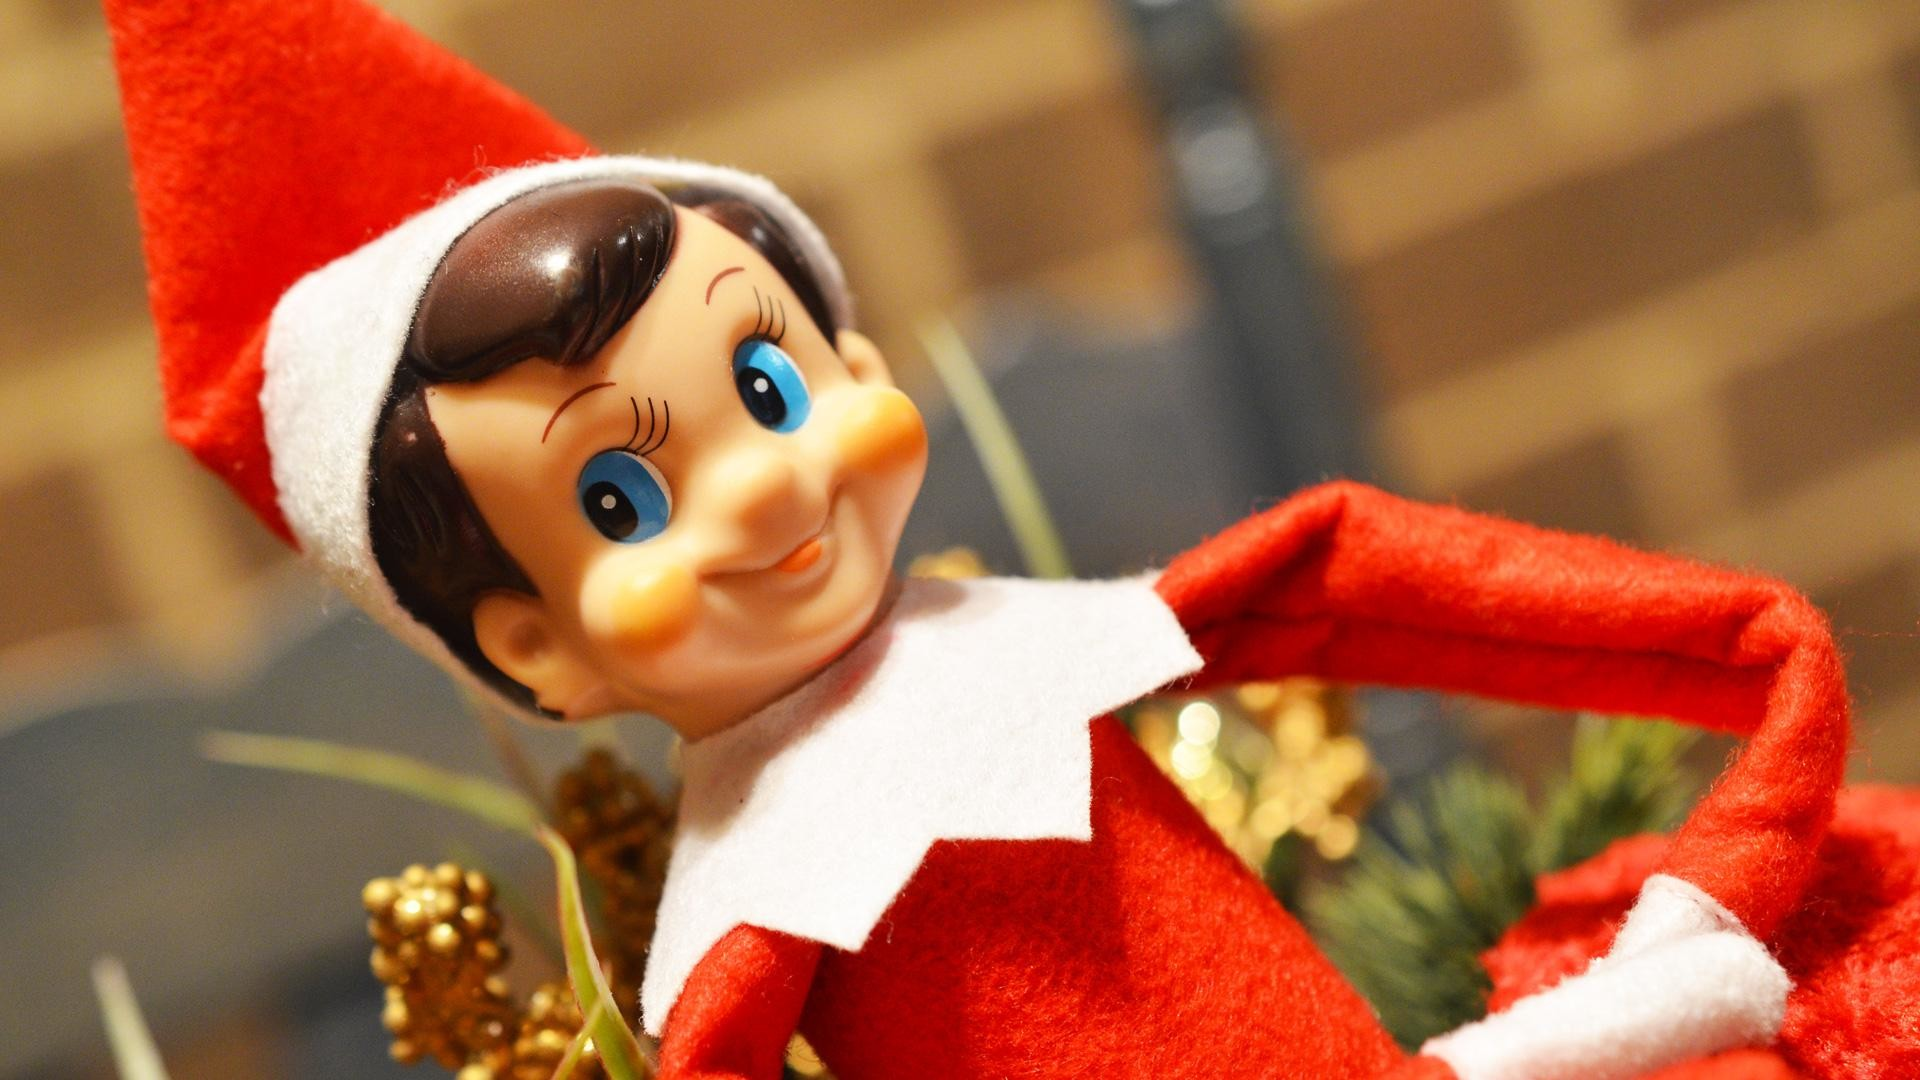 Need creative ideas for your Elf on the Shelf placement this year? We've